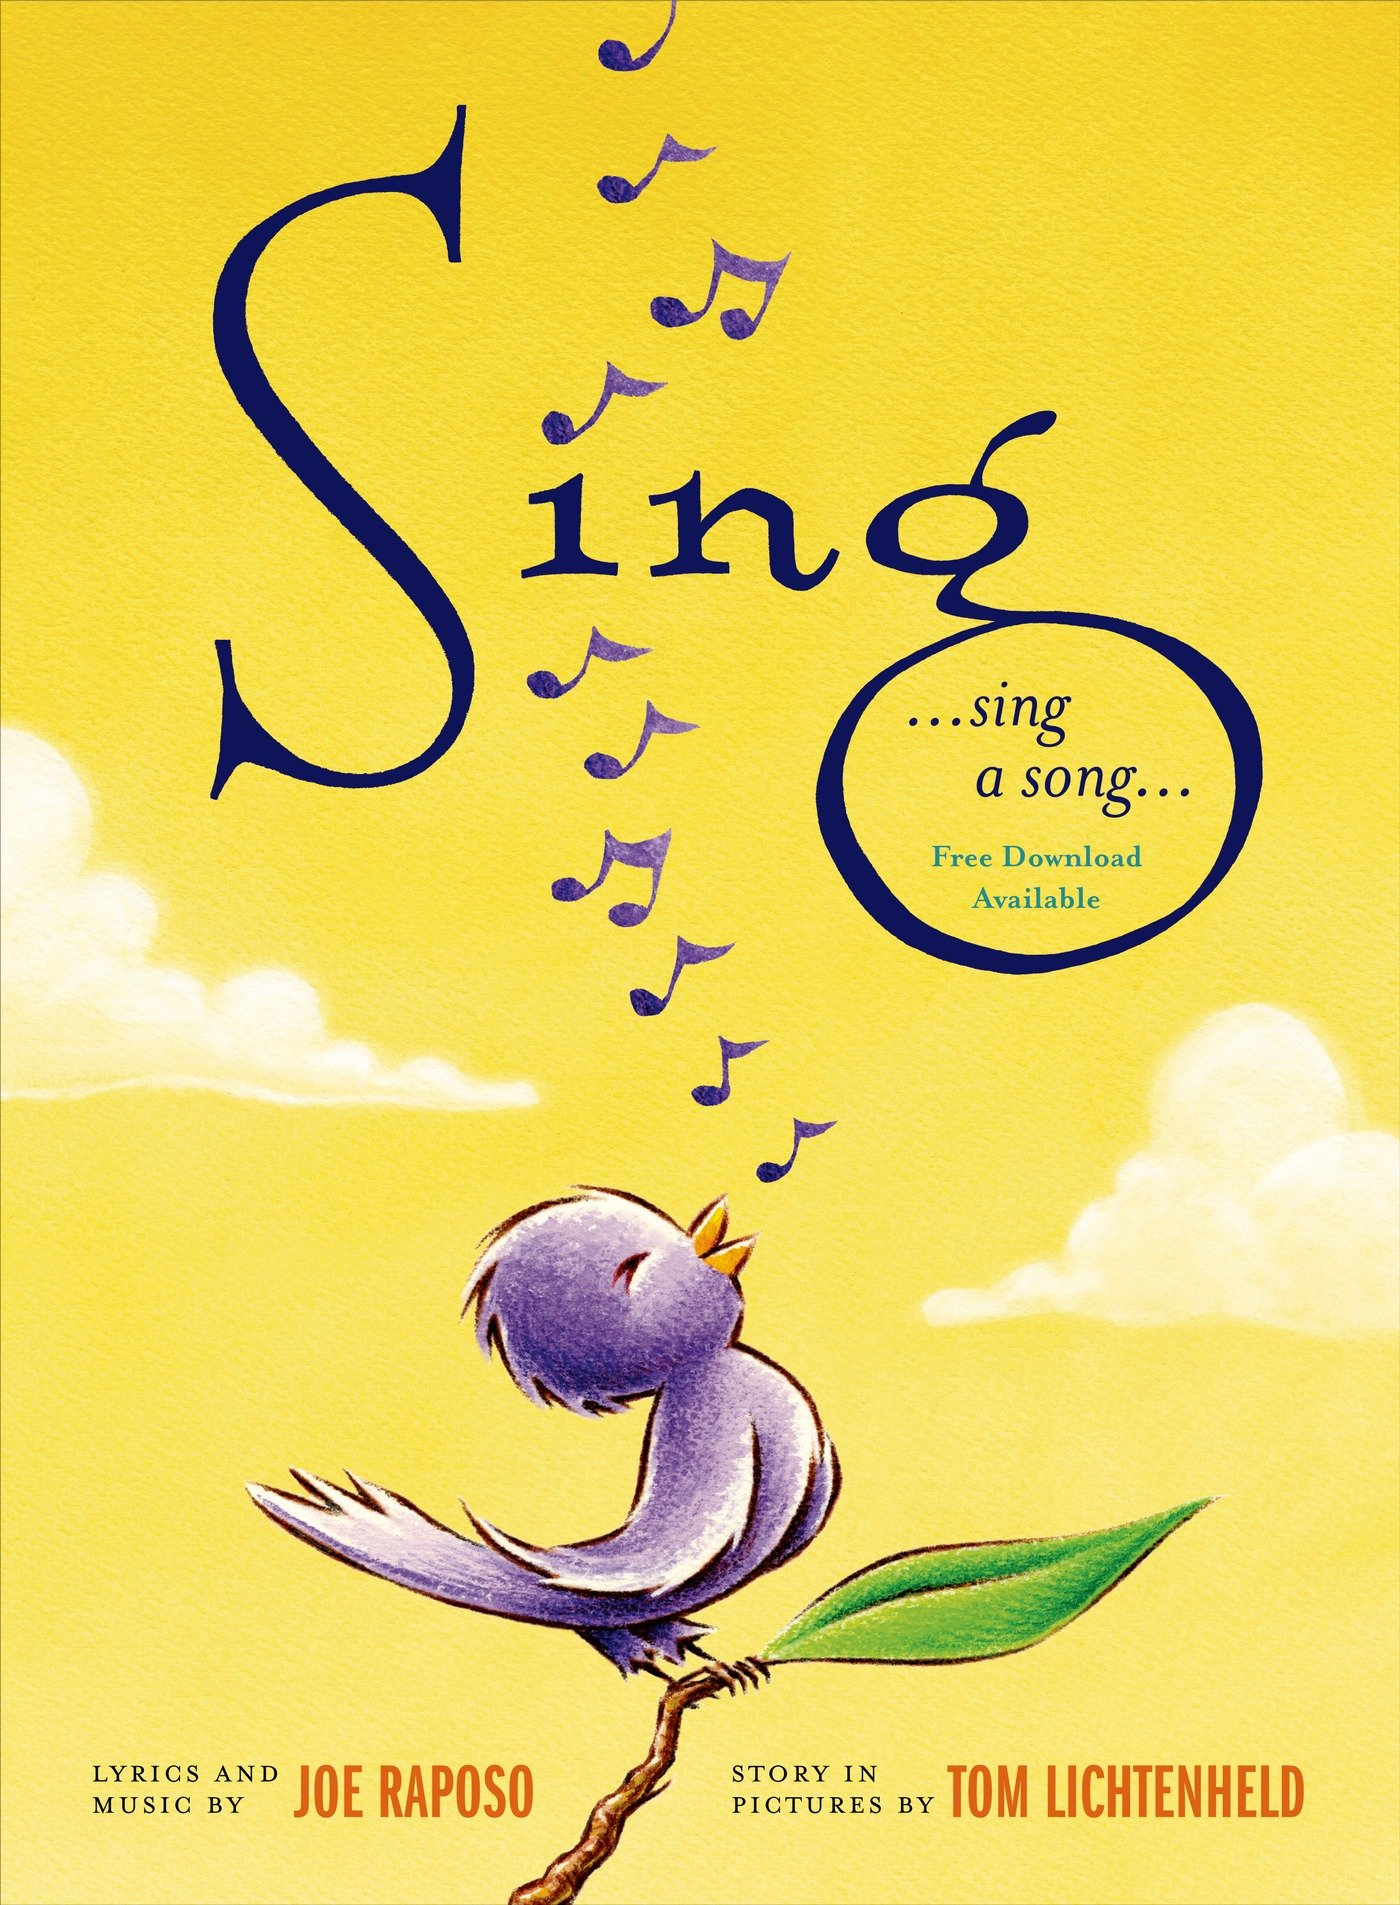 http://smile.amazon.com/Sing-Tom-Lichtenheld/dp/0805090711/ref=sr_1_1_twi_1?s=books&ie=UTF8&qid=1417145451&sr=1-1&keywords=sing